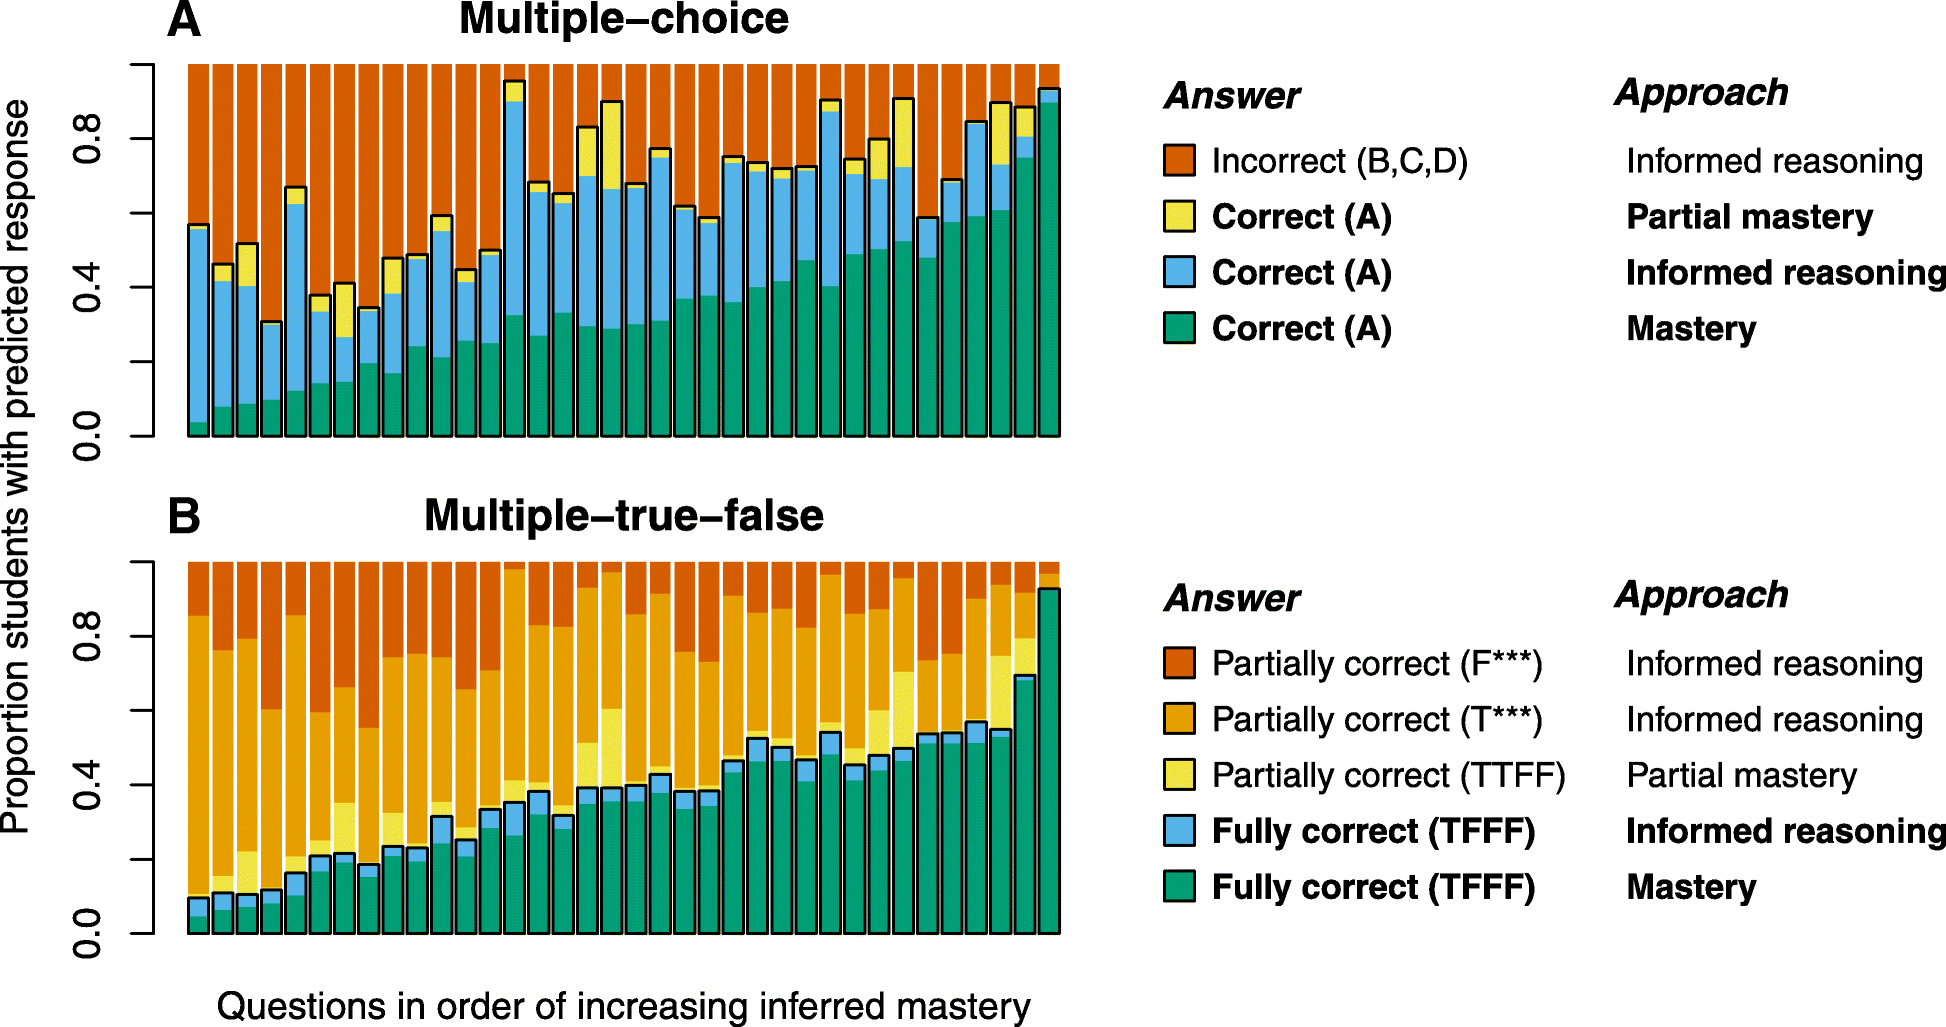 Multiple-true-false questions reveal more thoroughly the